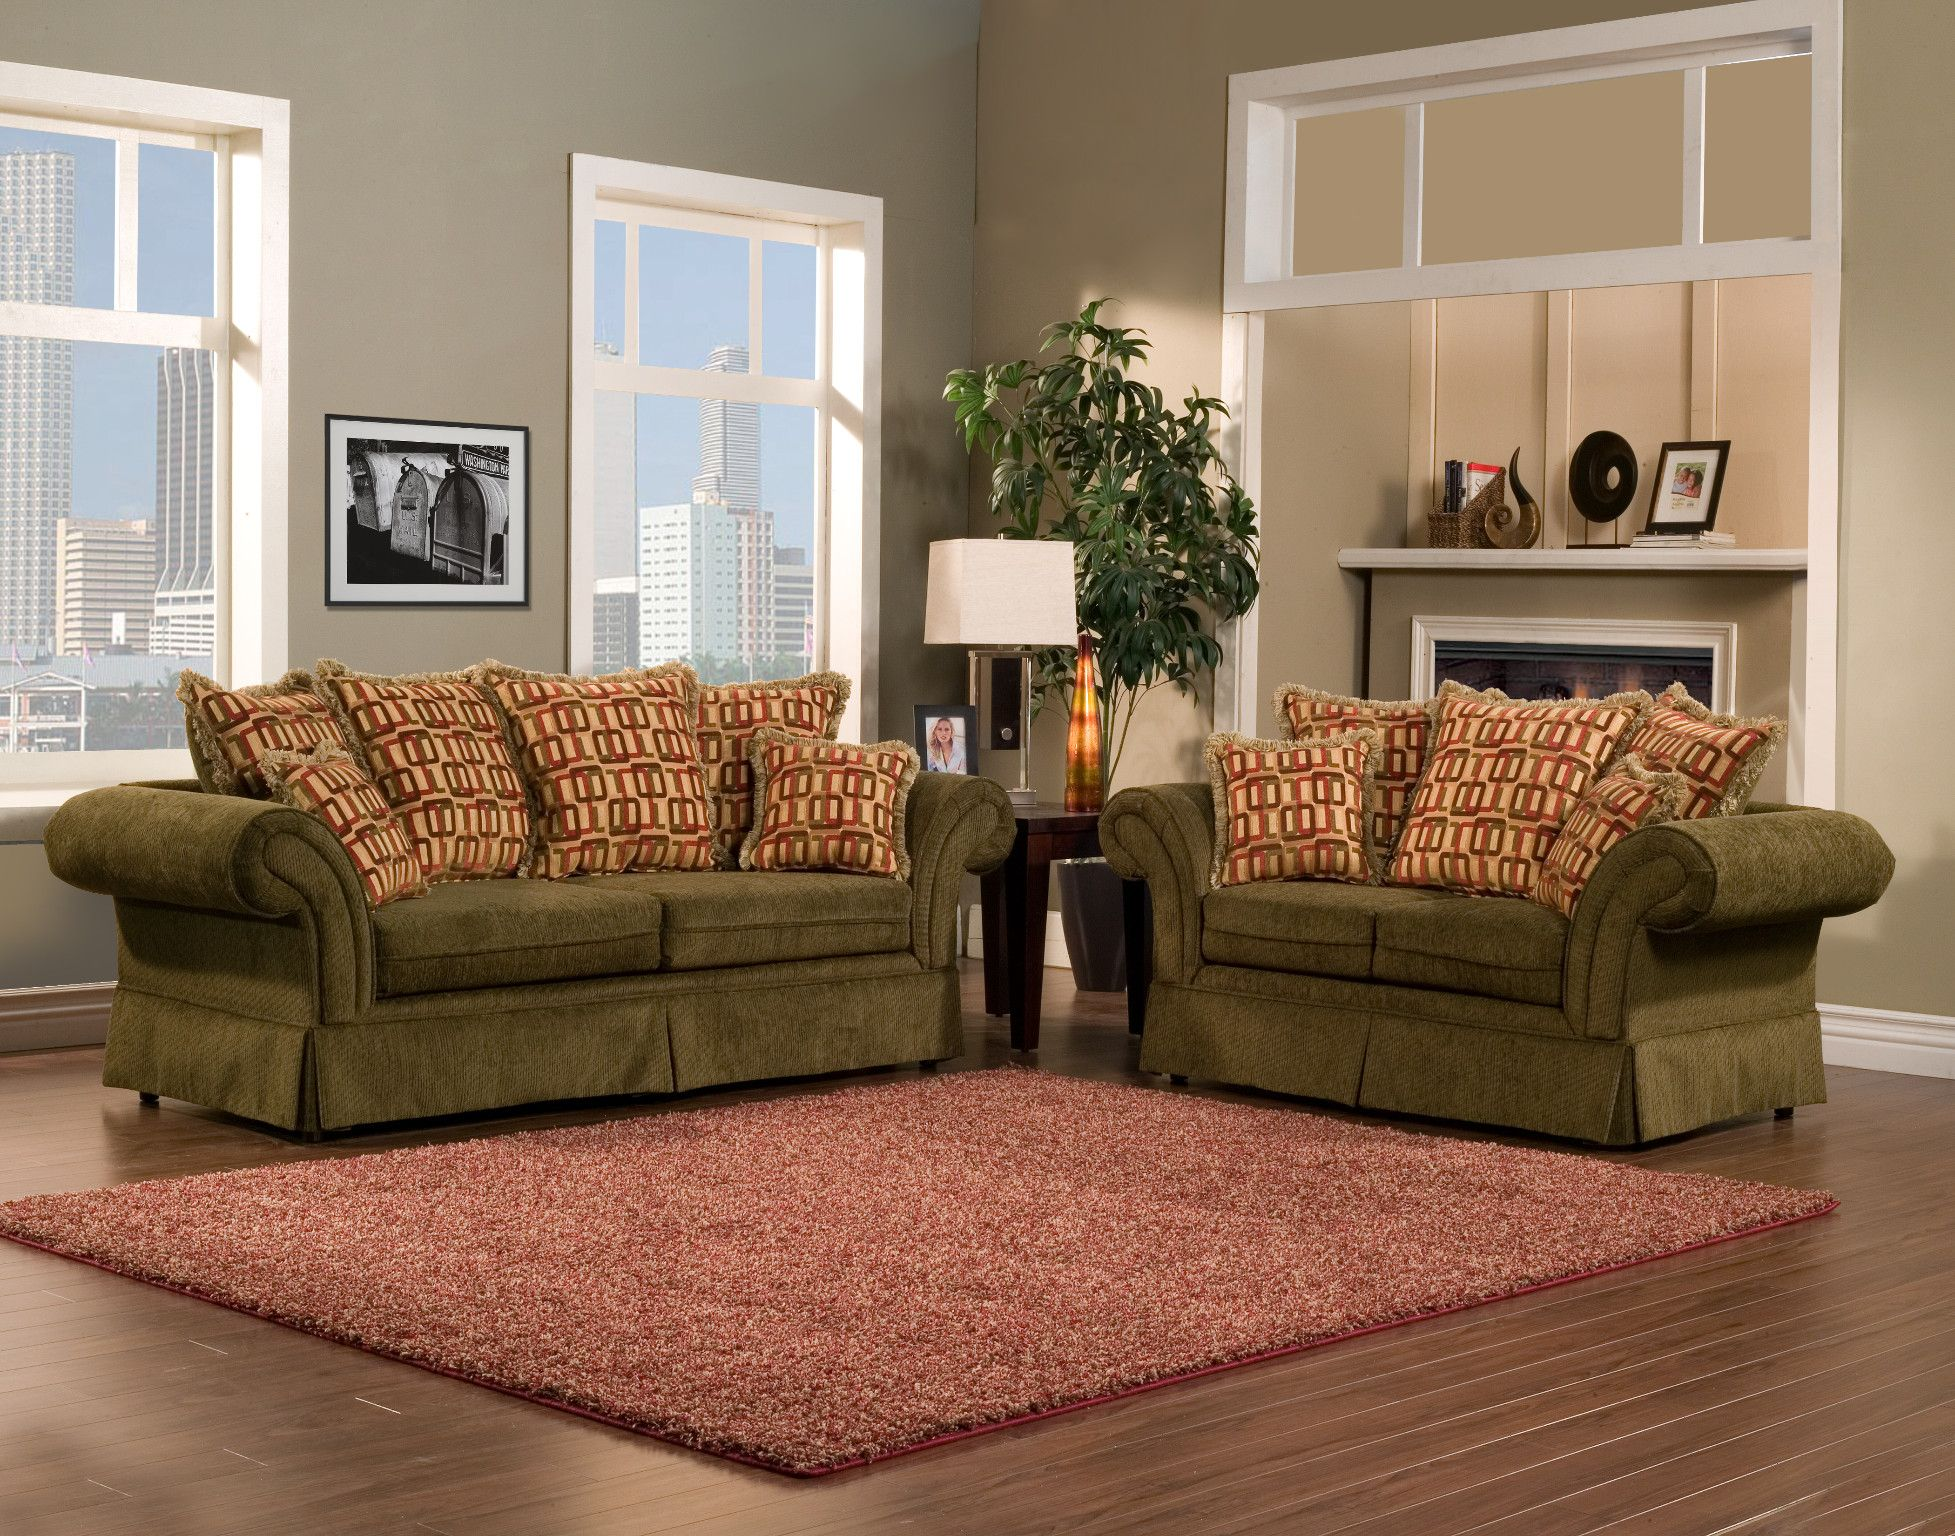 Olive Green Wall Decor Pleasureable Olive Green Fabric Traditional Sofa With Red